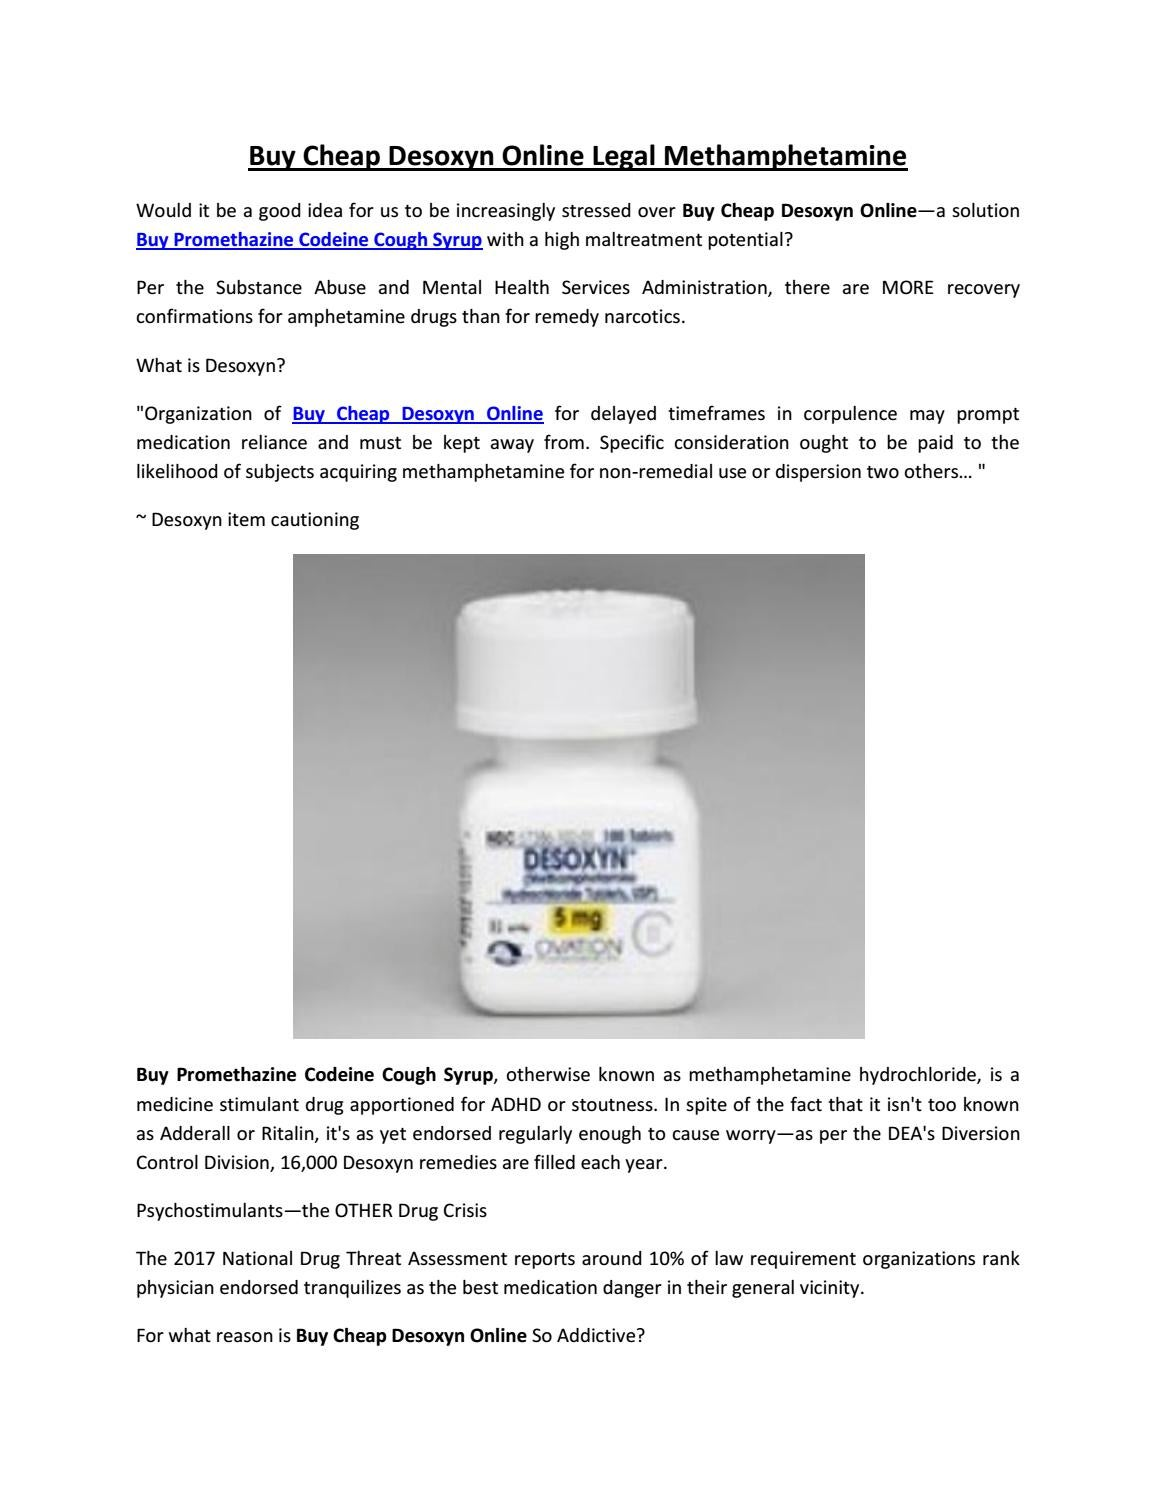 Buy Promethazine Codeine Cough Syrup - www